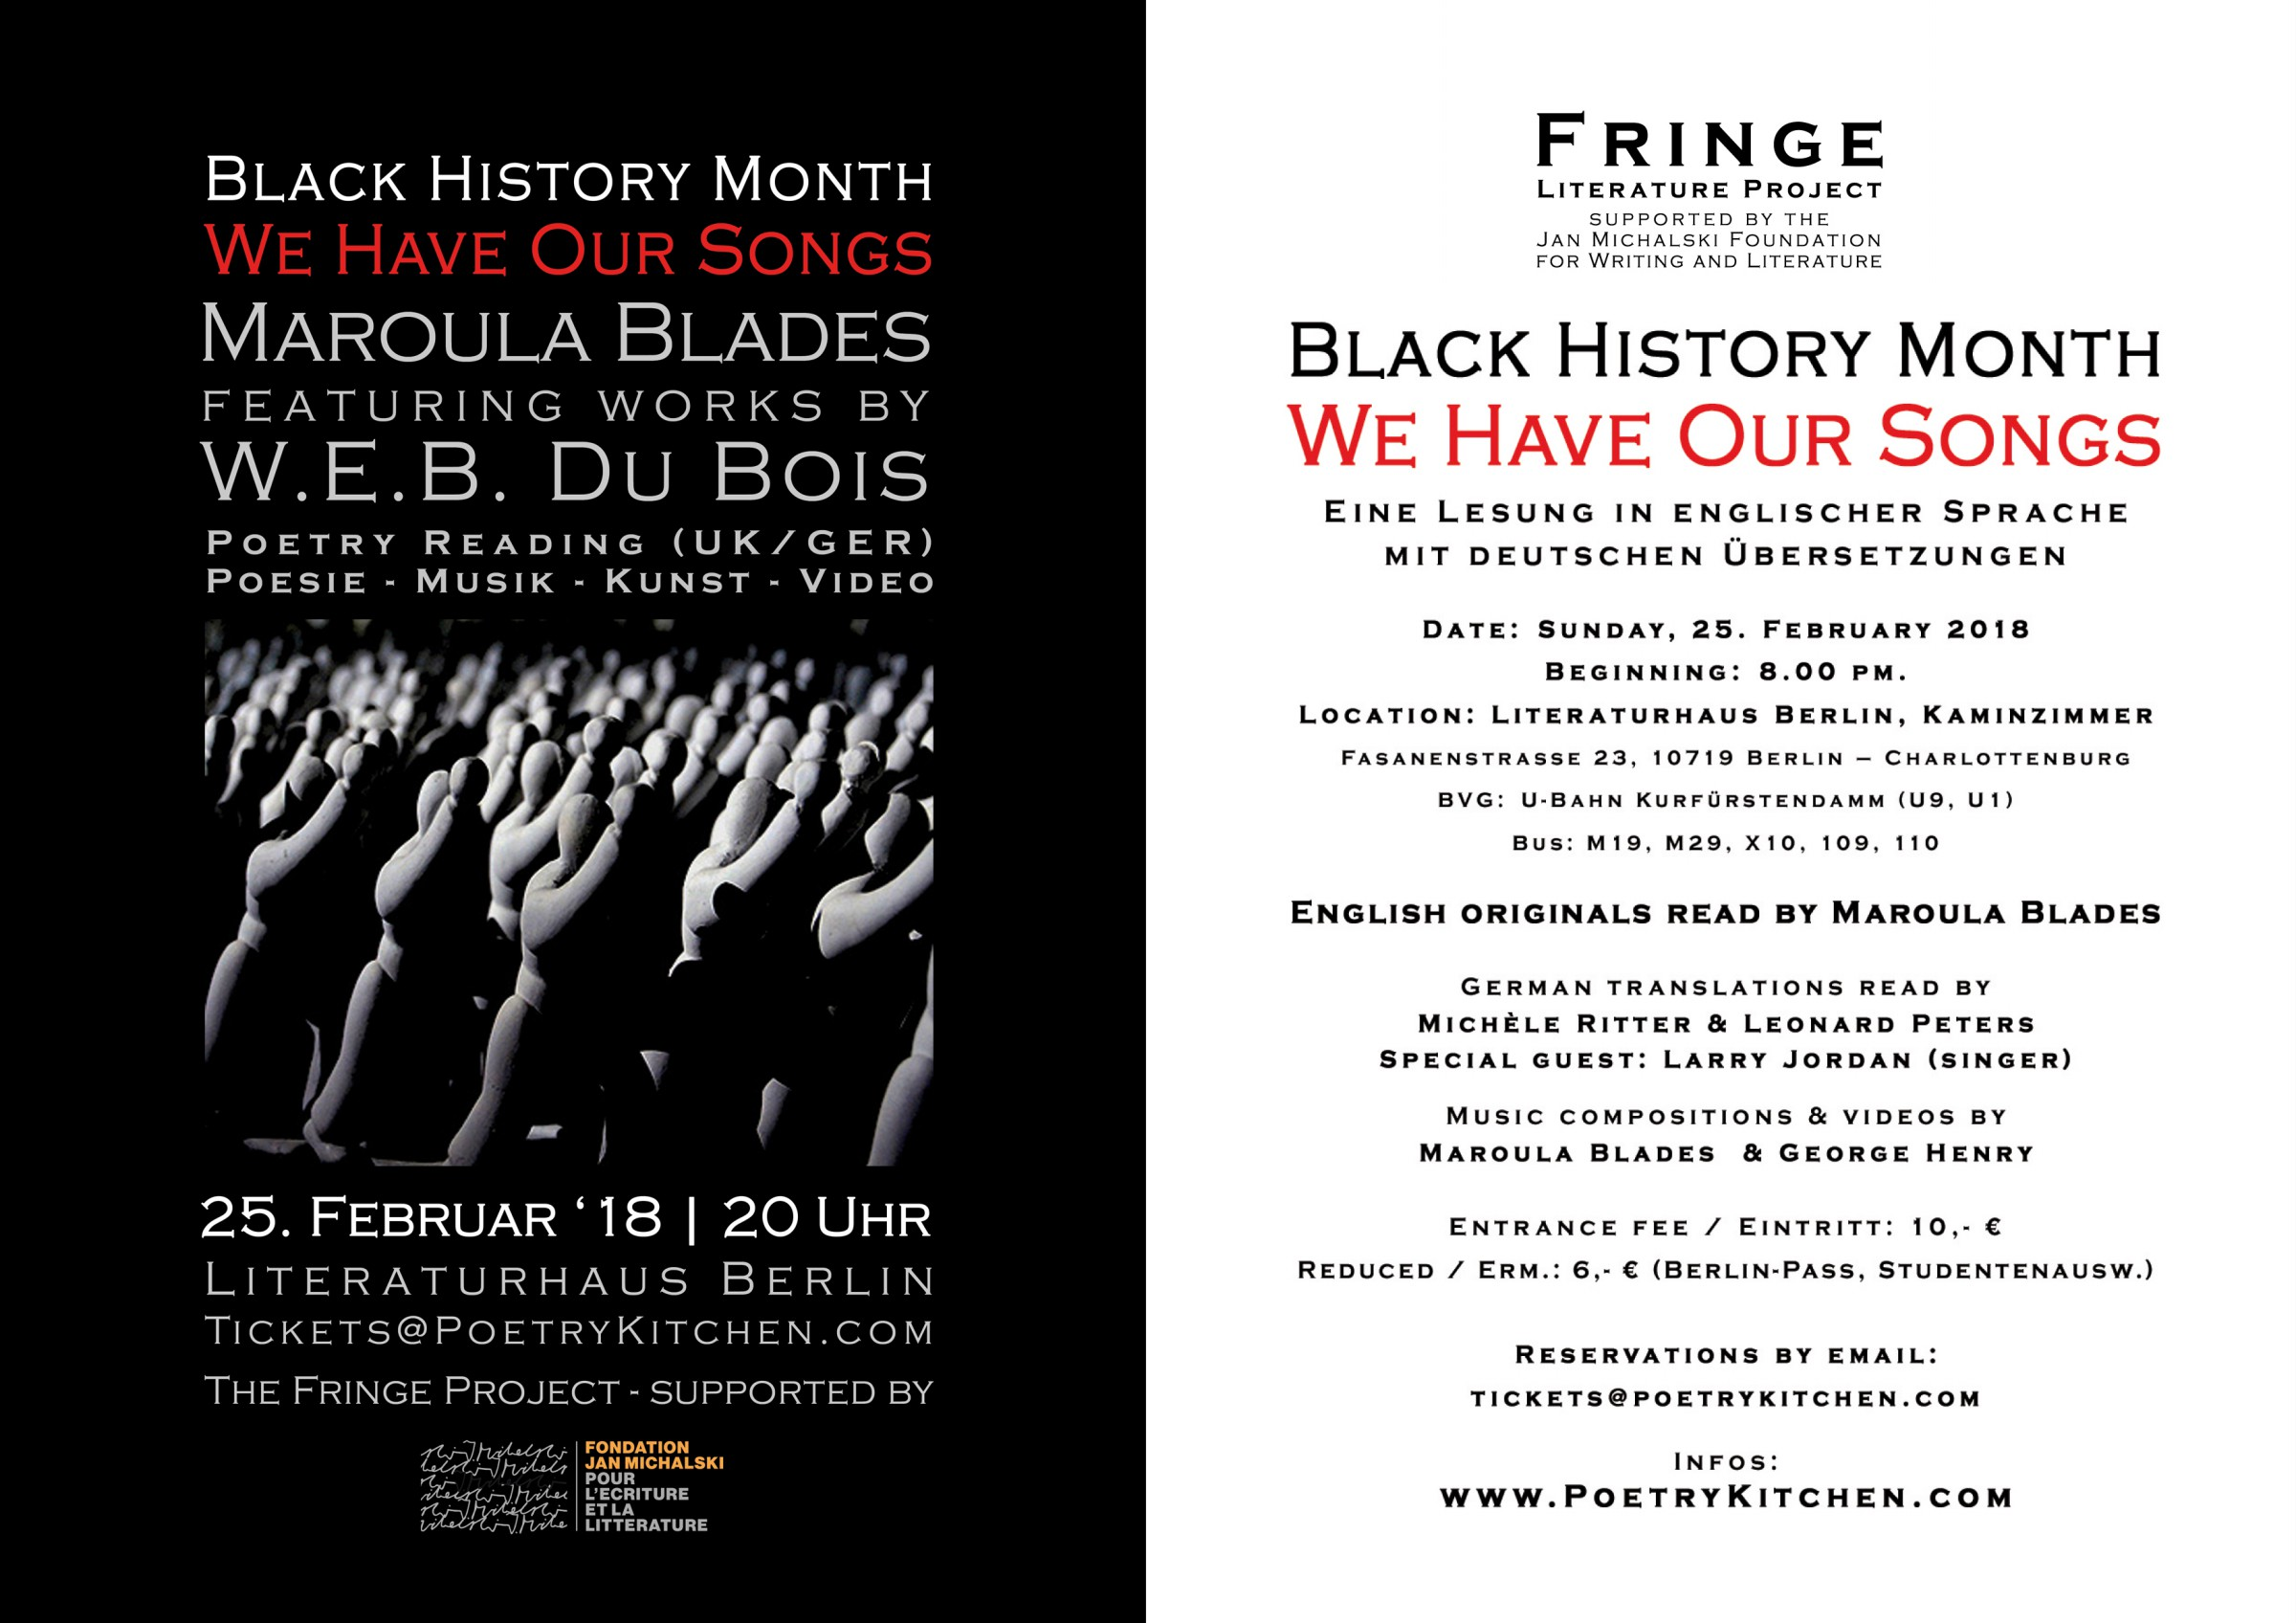 email flyer - Maroula Blades - Black History Month 2017